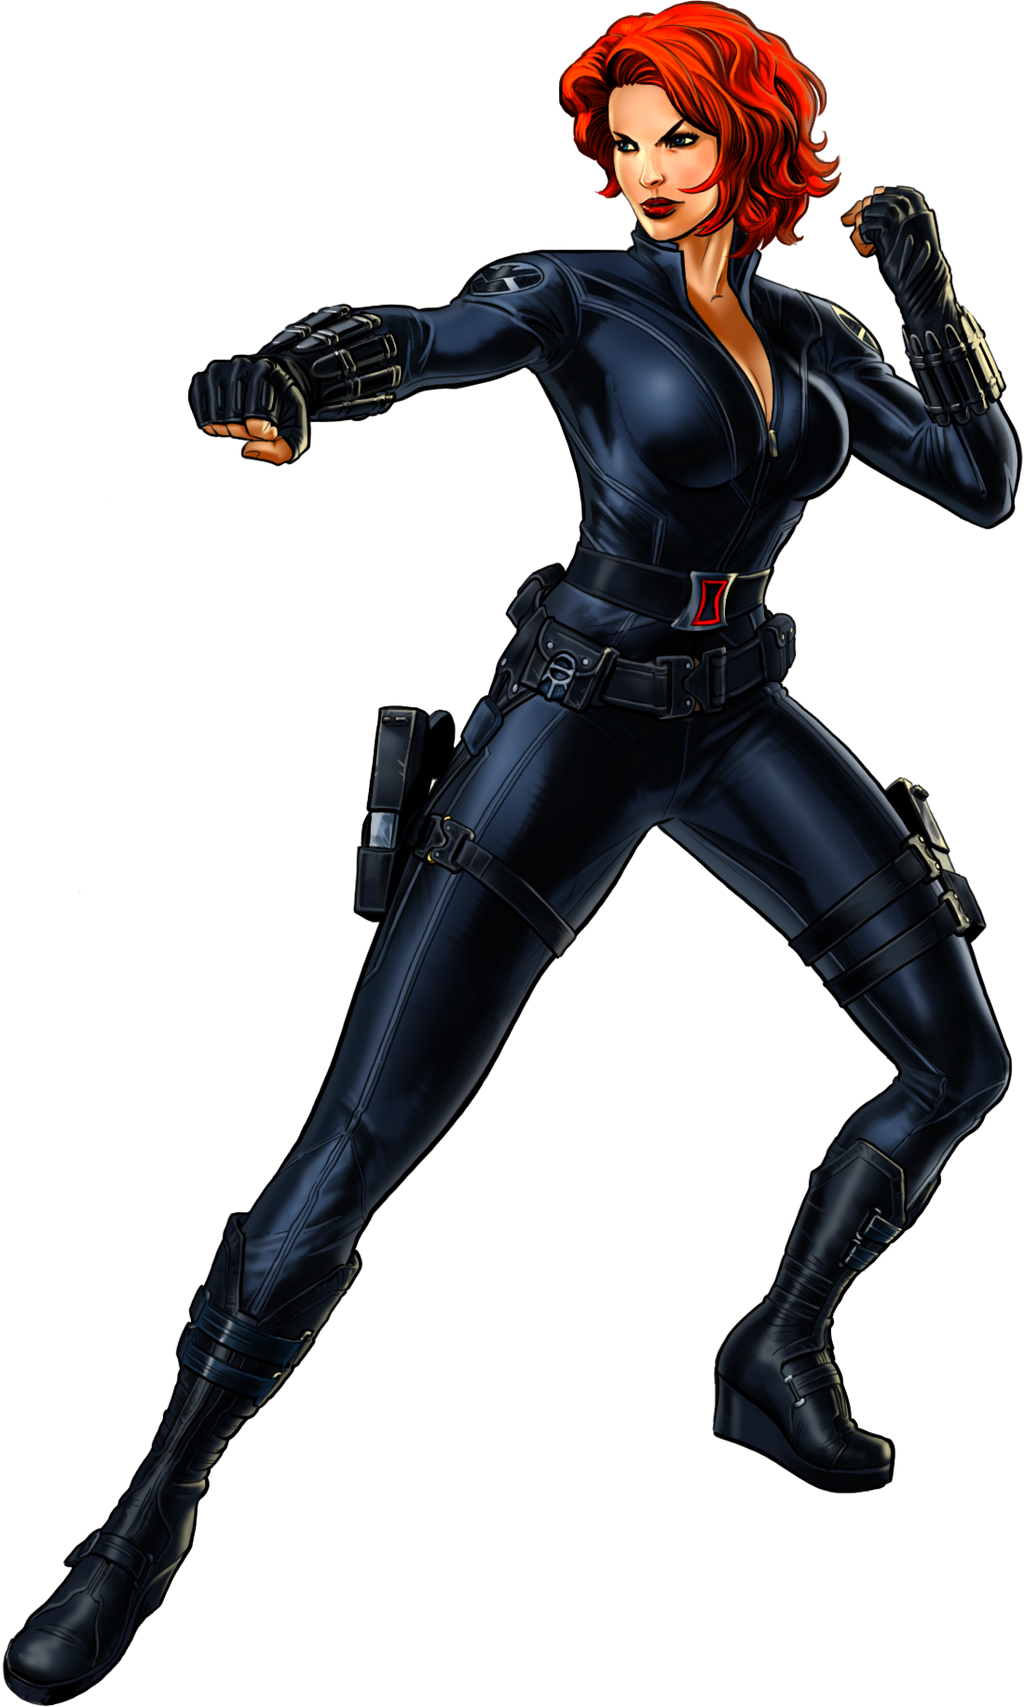 Black Widow Avengers by alexiscabo1 on DeviantArt